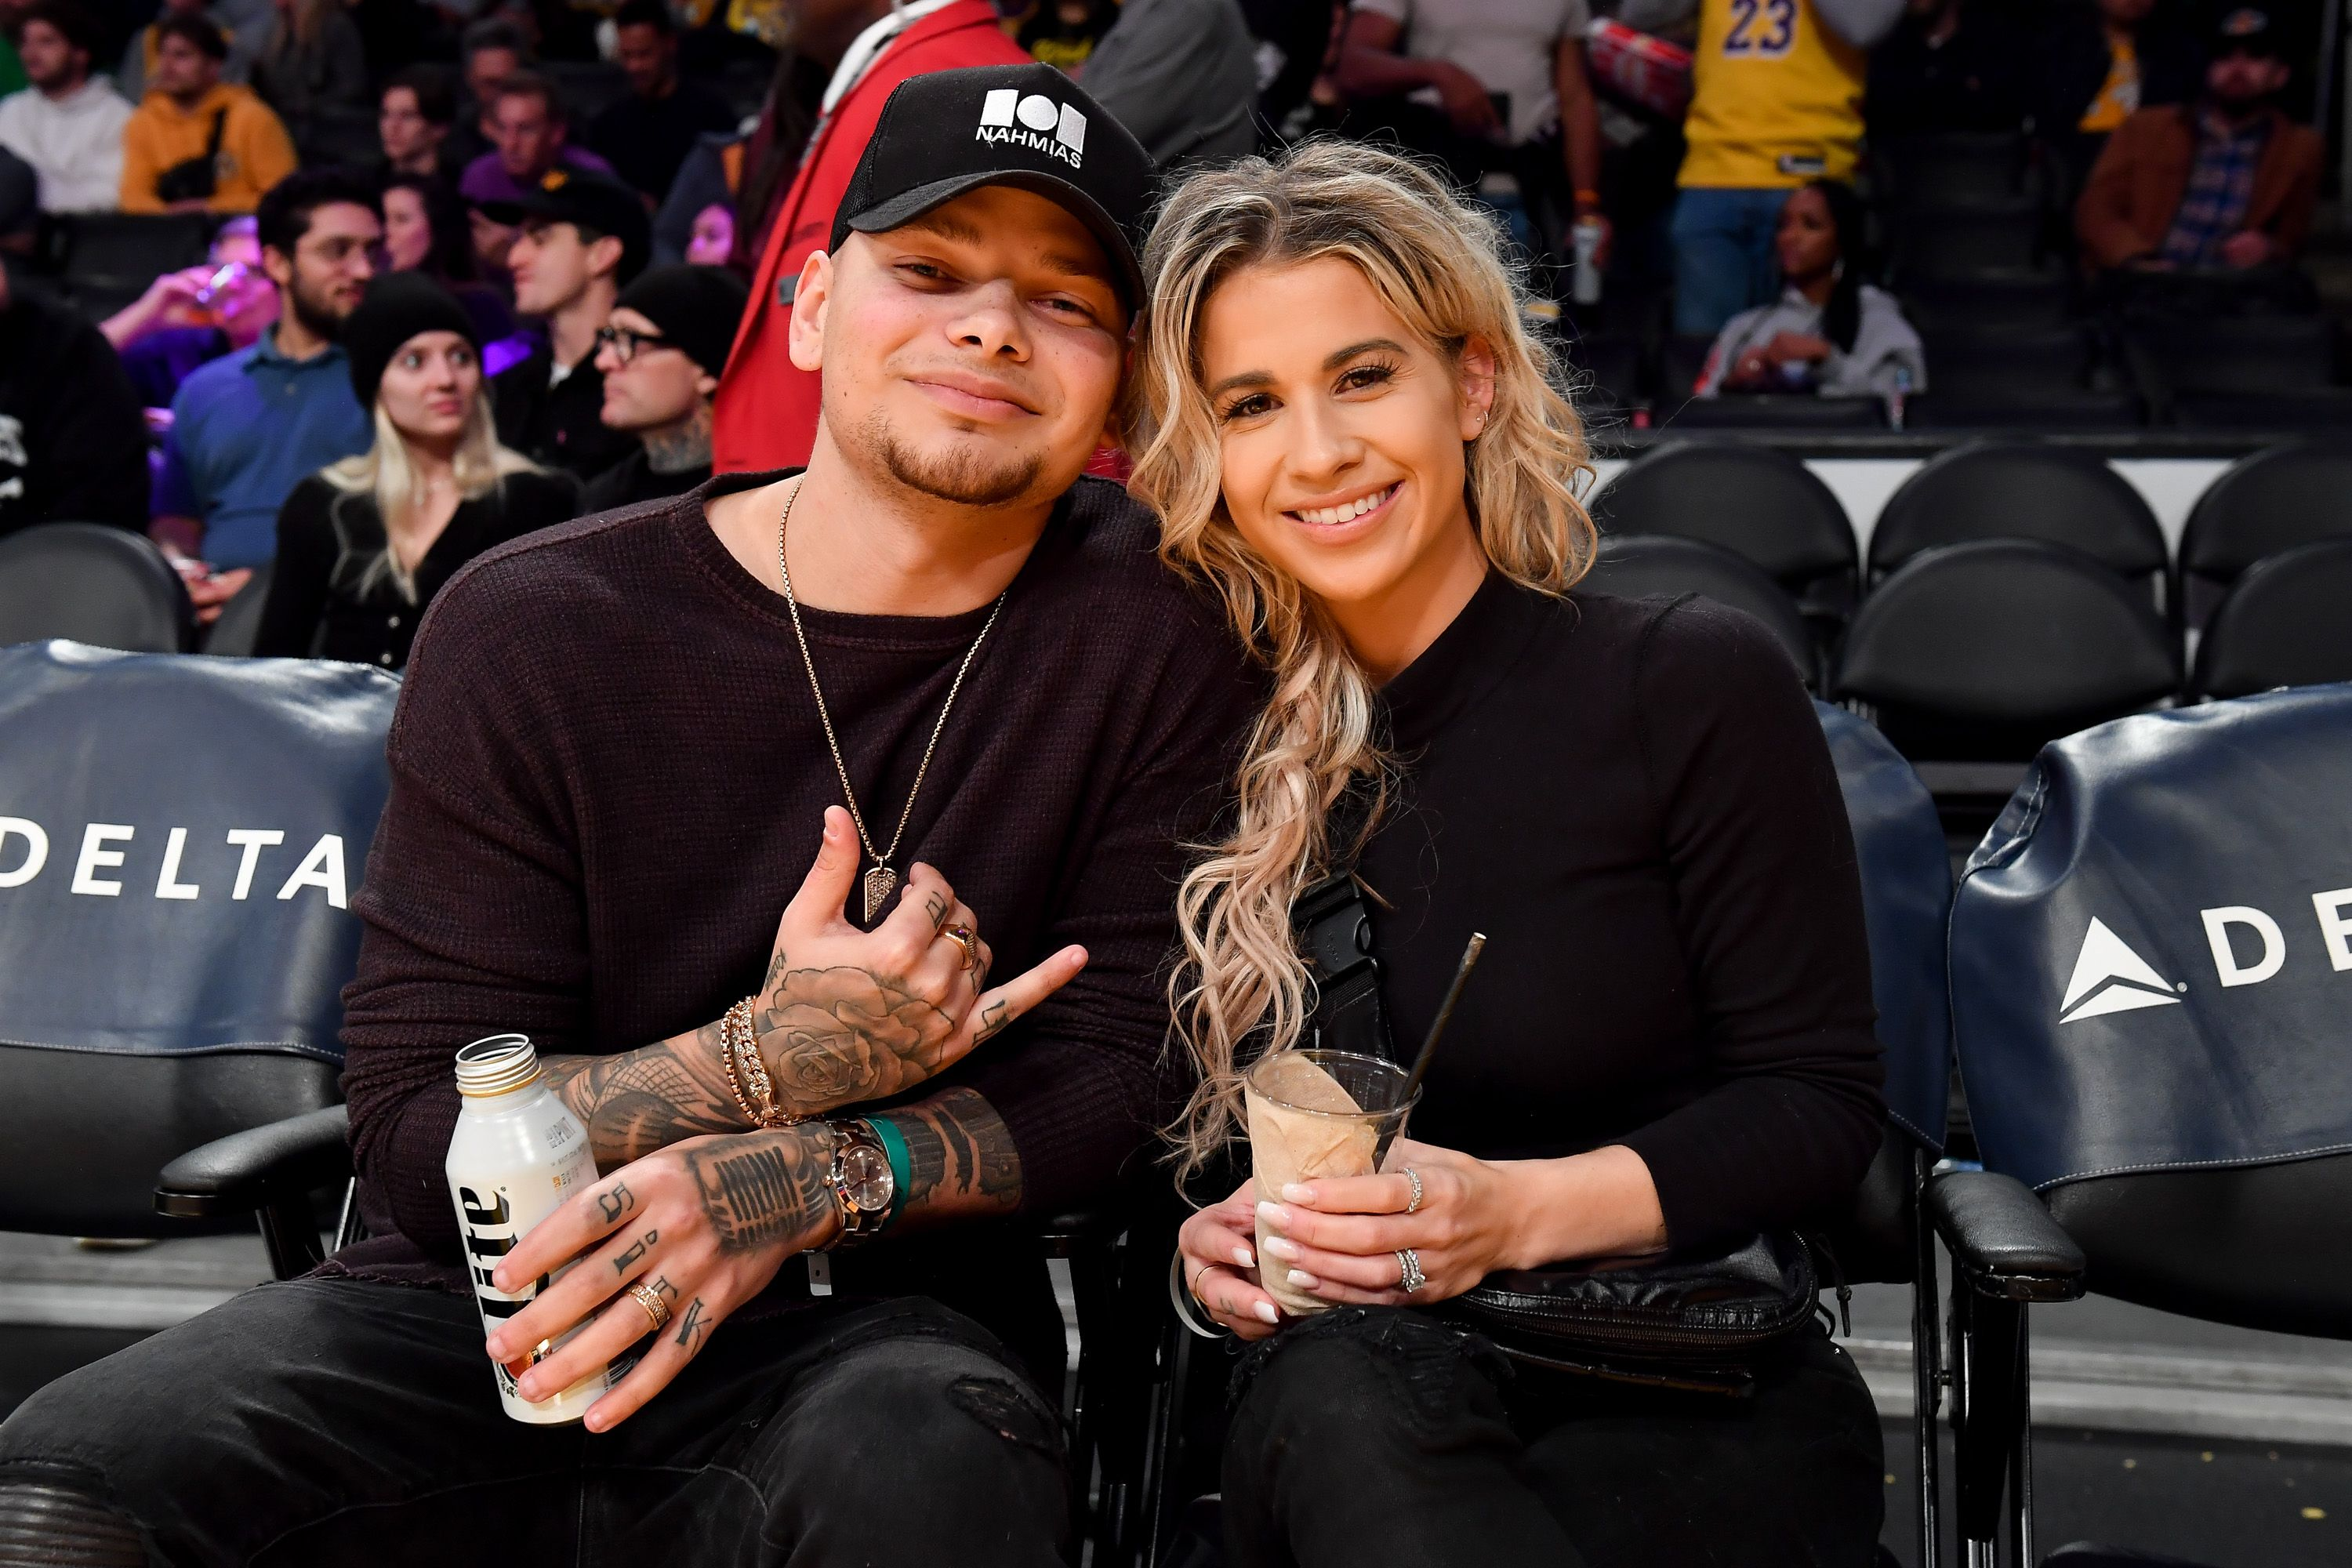 Kane Brown and Katelyn Jae at a basketball game between the Los Angeles Lakers and the New York Knicks in January 2020 in Los Angeles | Source: Getty Images